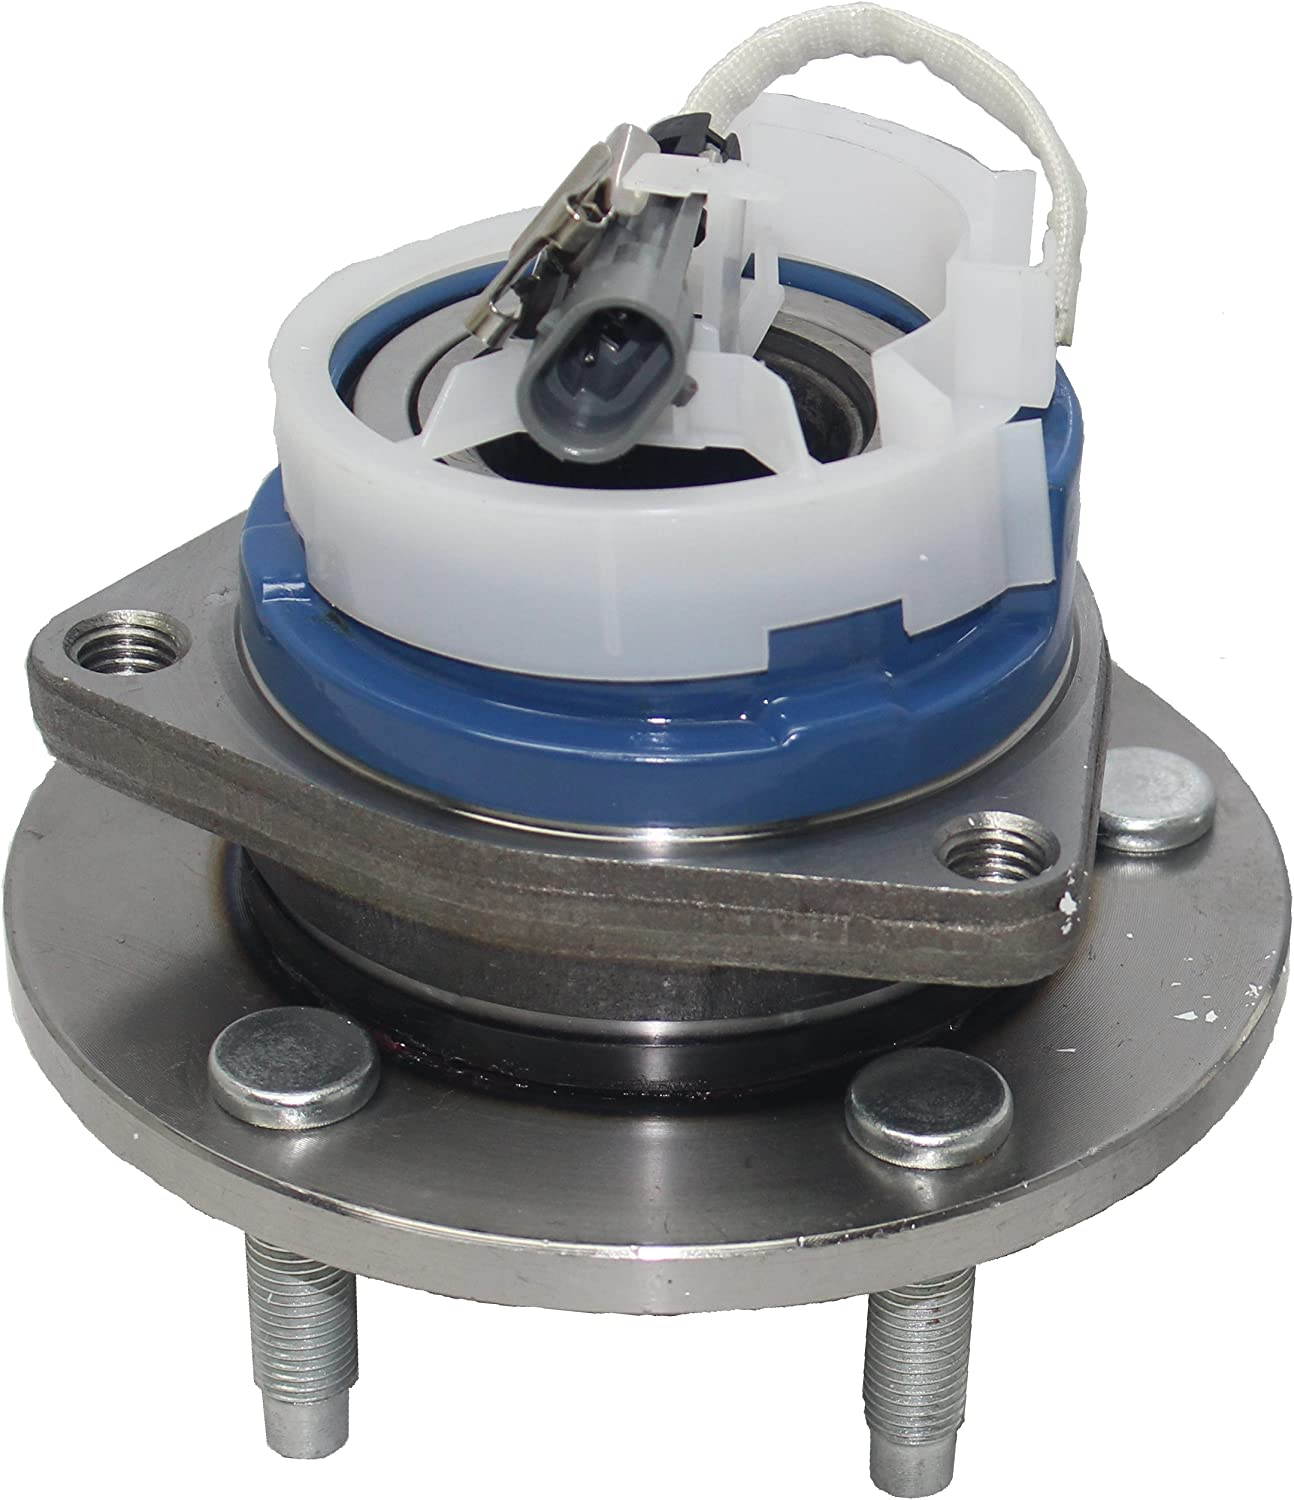 2008 fits Cadillac DTS Front Wheel Bearing and Hub Assembly One Bearing Included with Two Years Warranty Note: Non Heavy Duty FWD